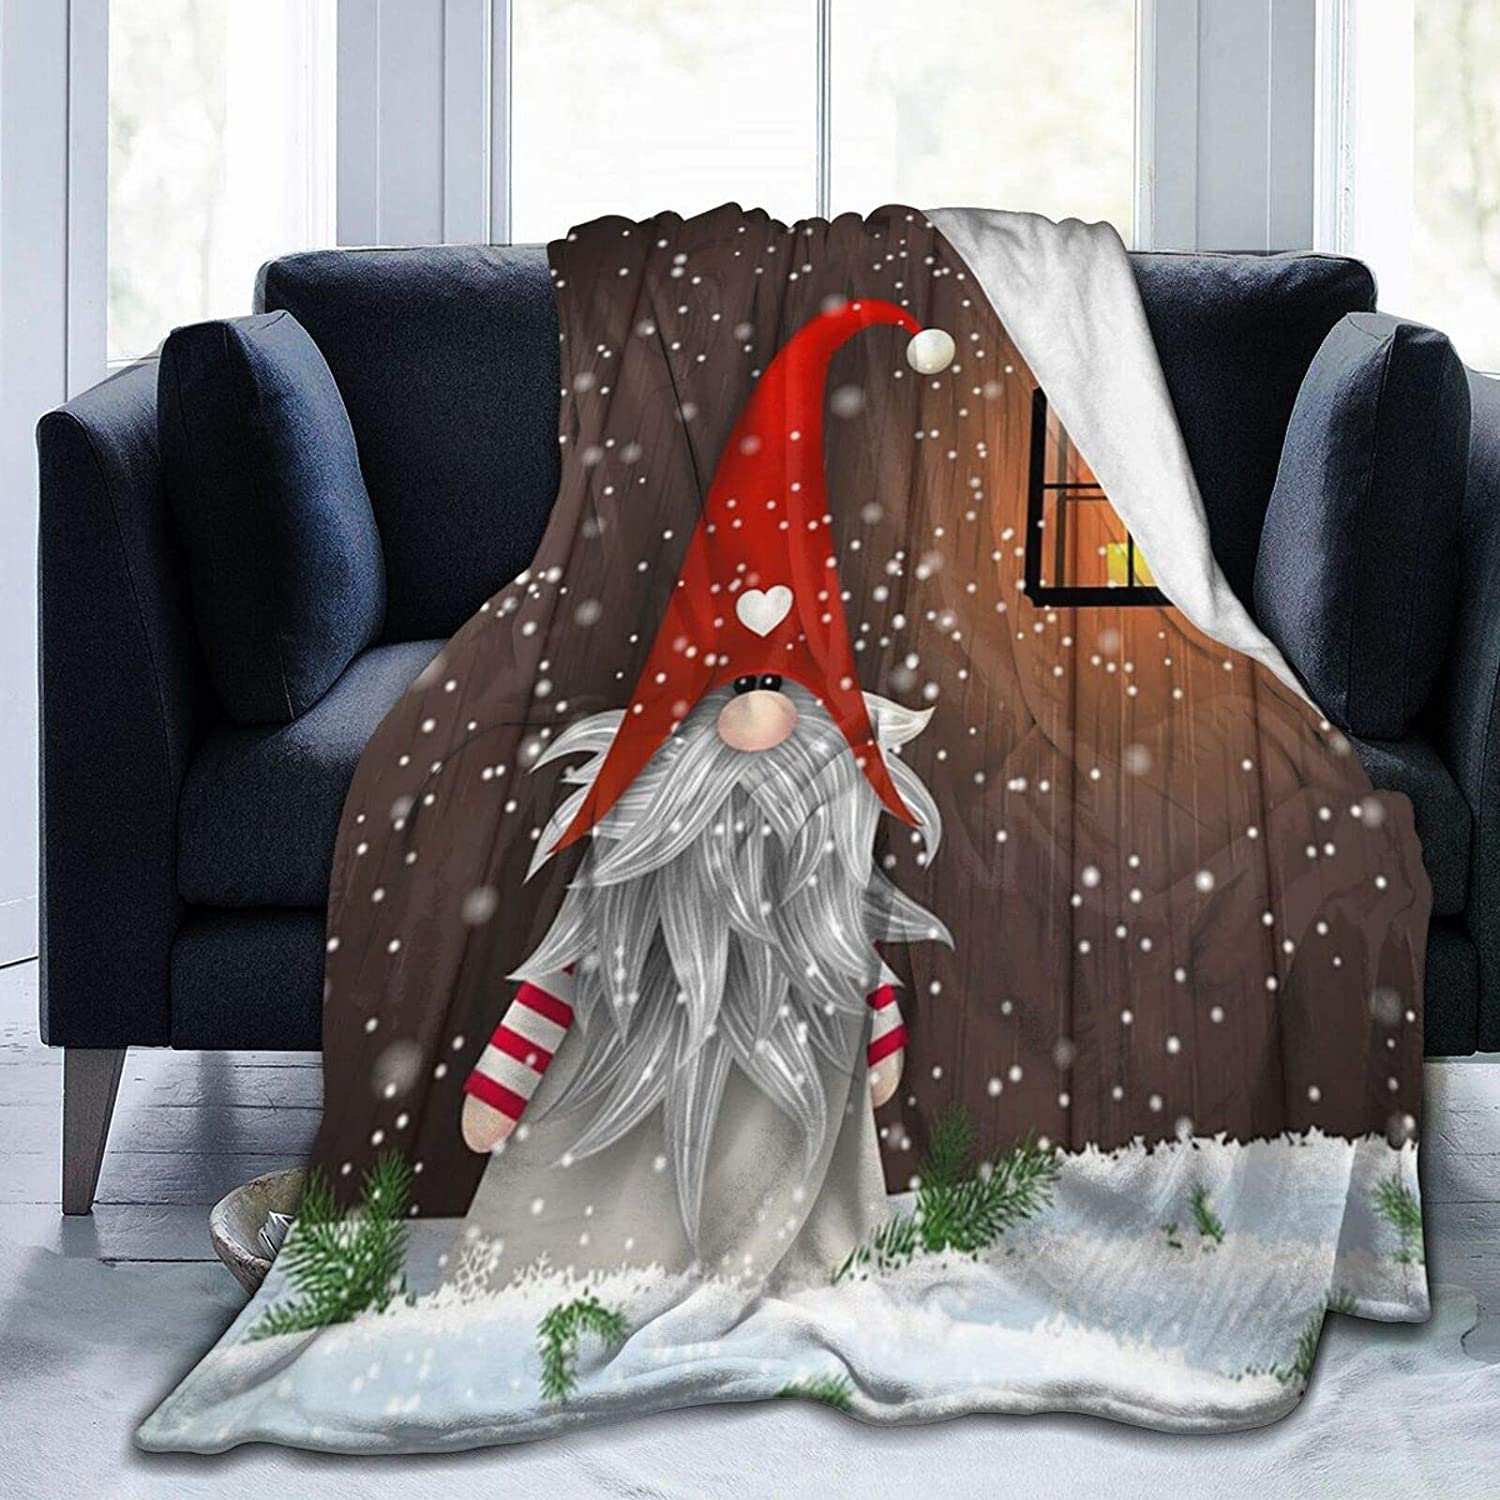 Christmas Folklore Elves quality assurance Cute Gnome Throw Fleece NEW Blanket Flannel